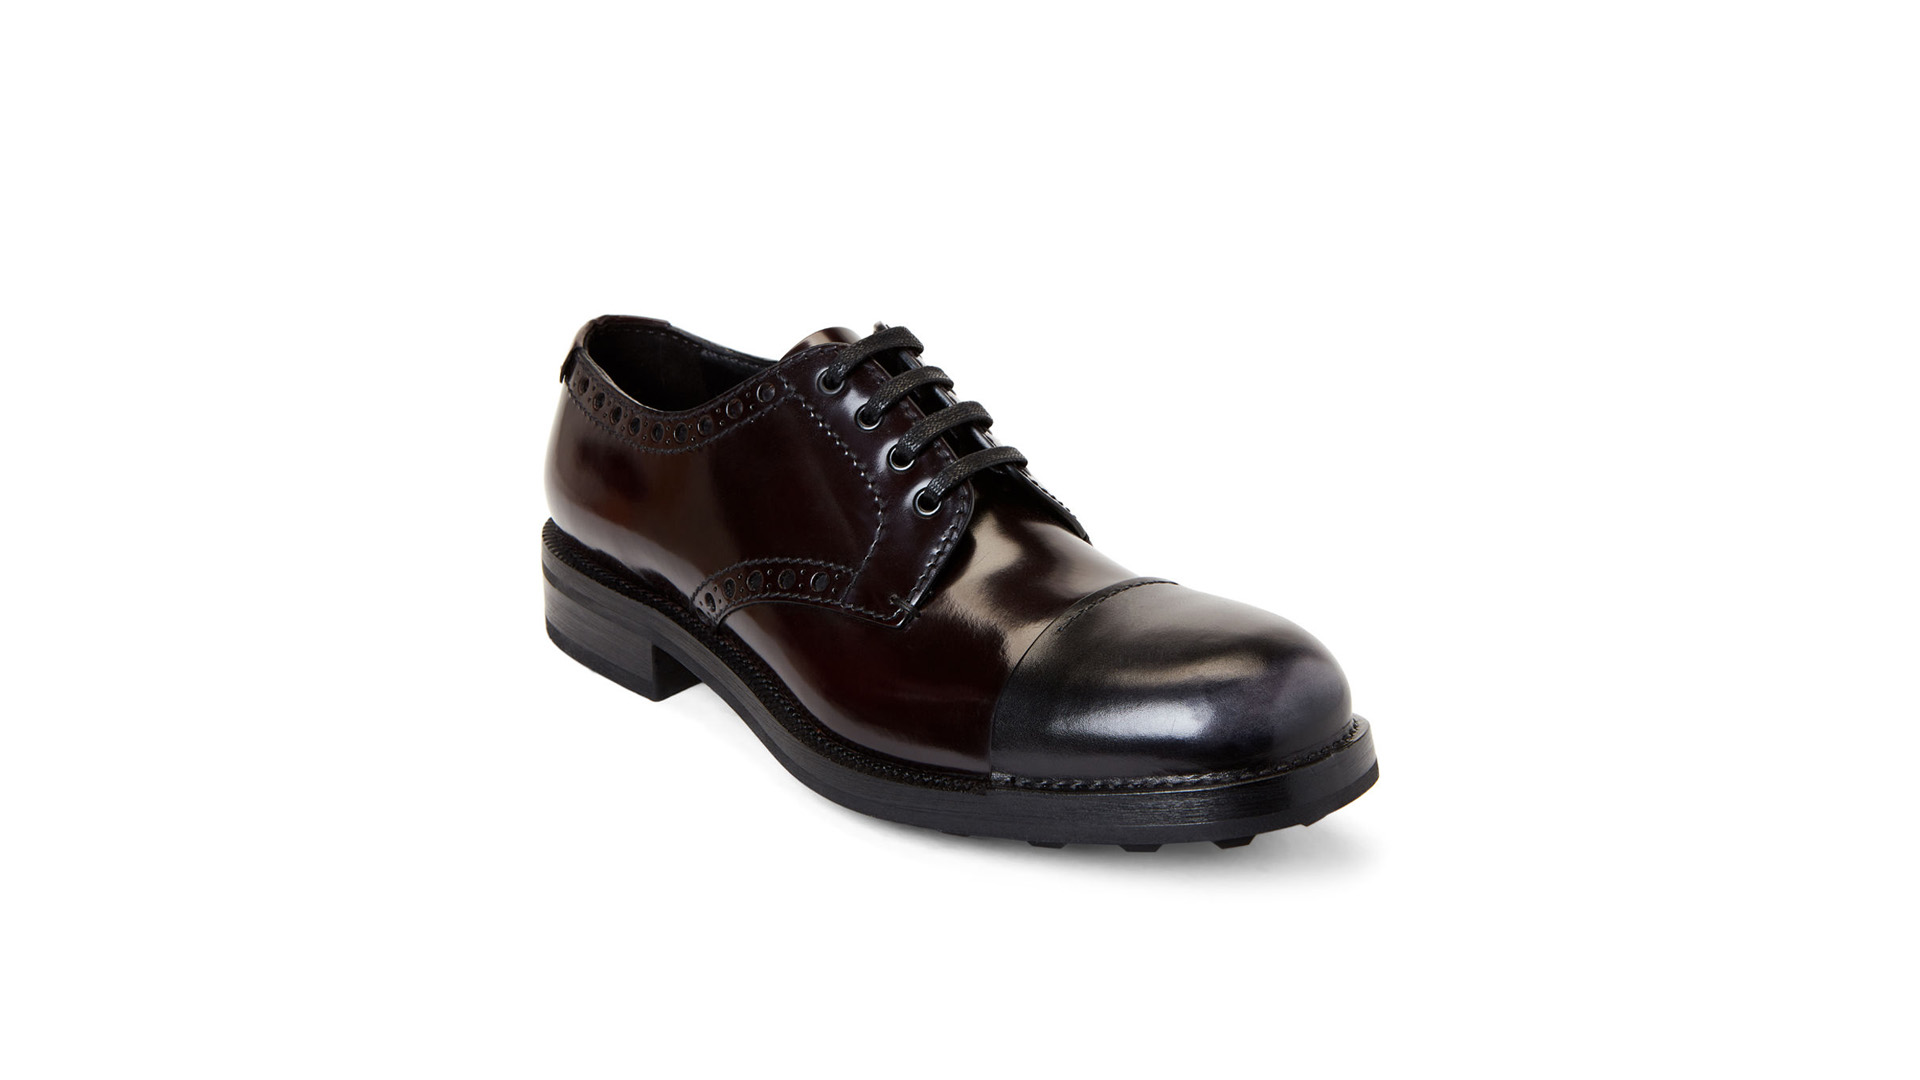 Prada Designer Shoes Bordeaux Brogue Leather Derby Shoes